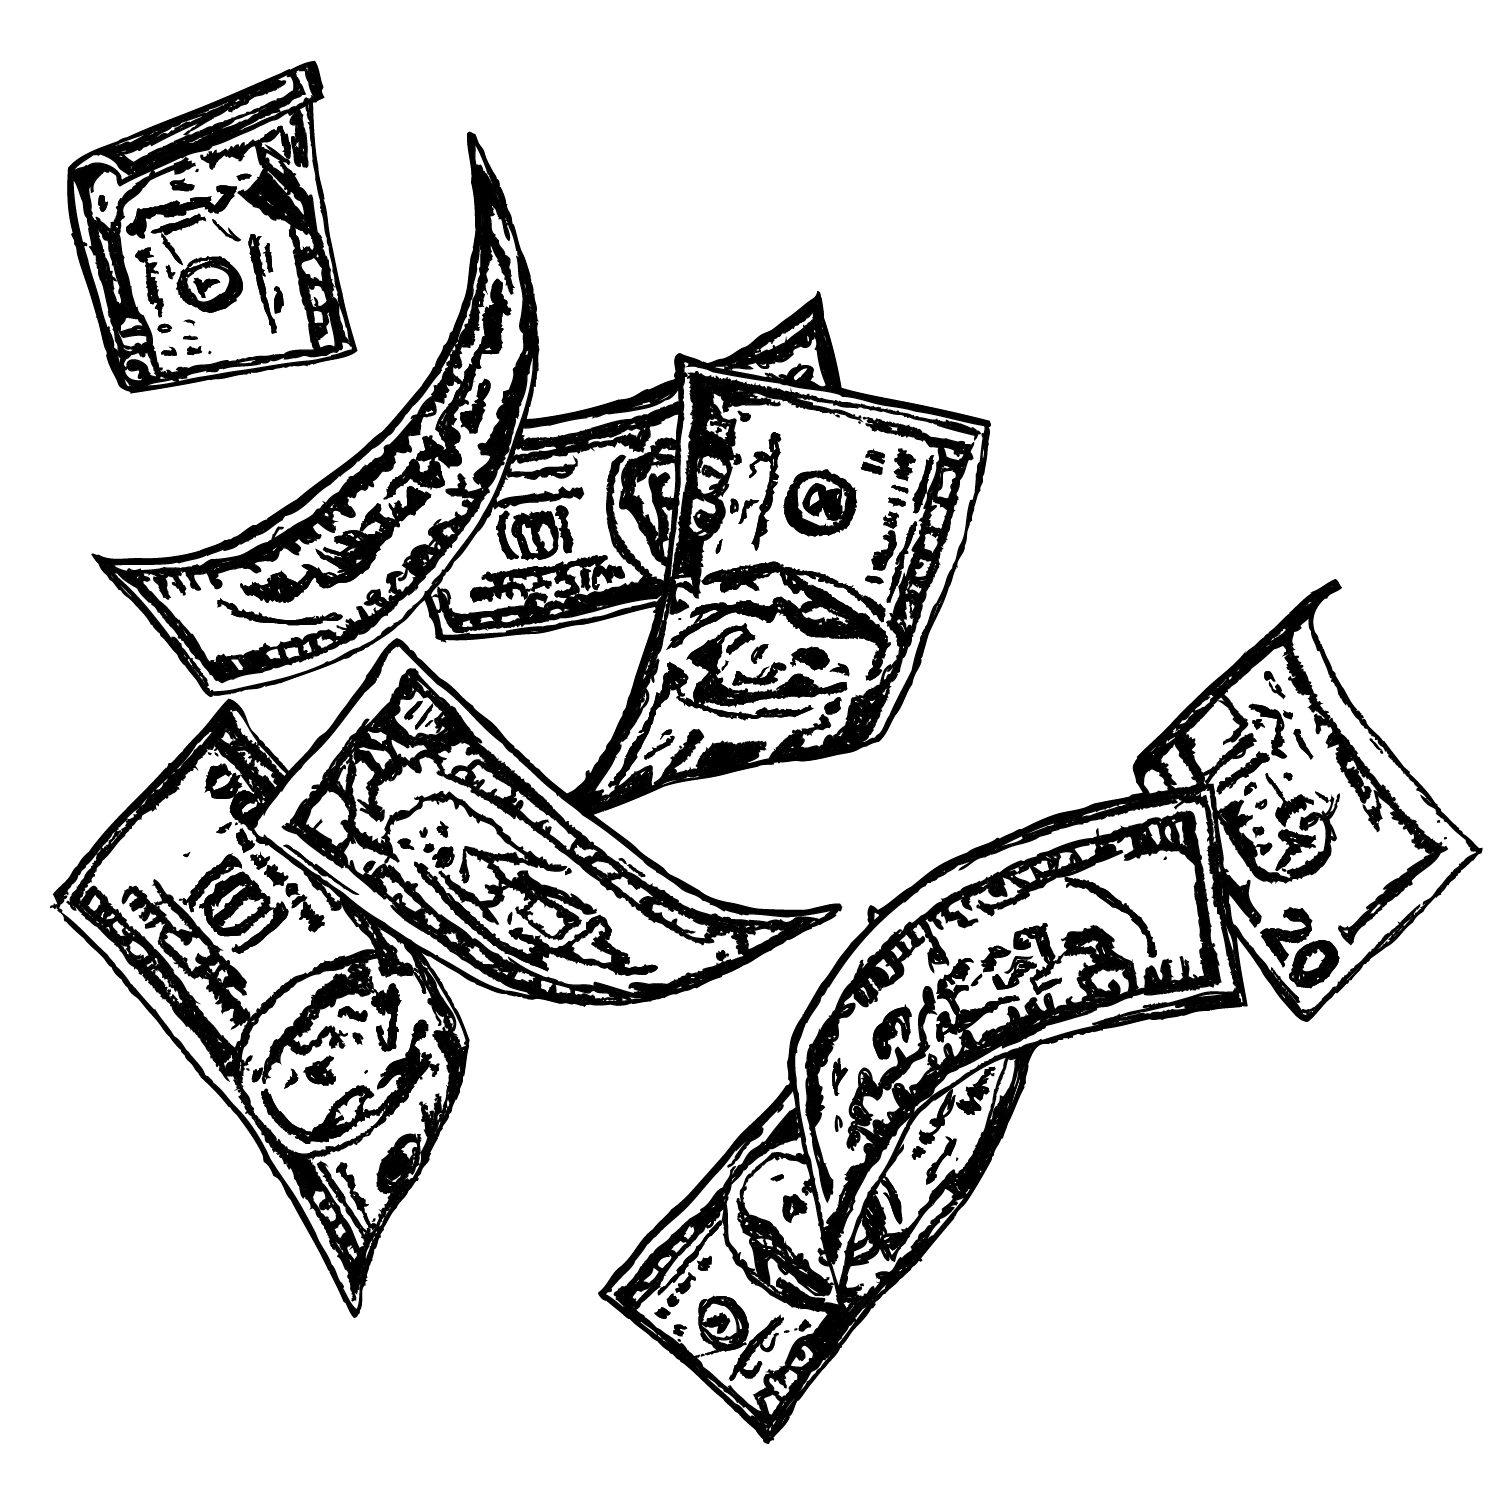 Money Drawing Png - Money drawing png 3 » PNG Image